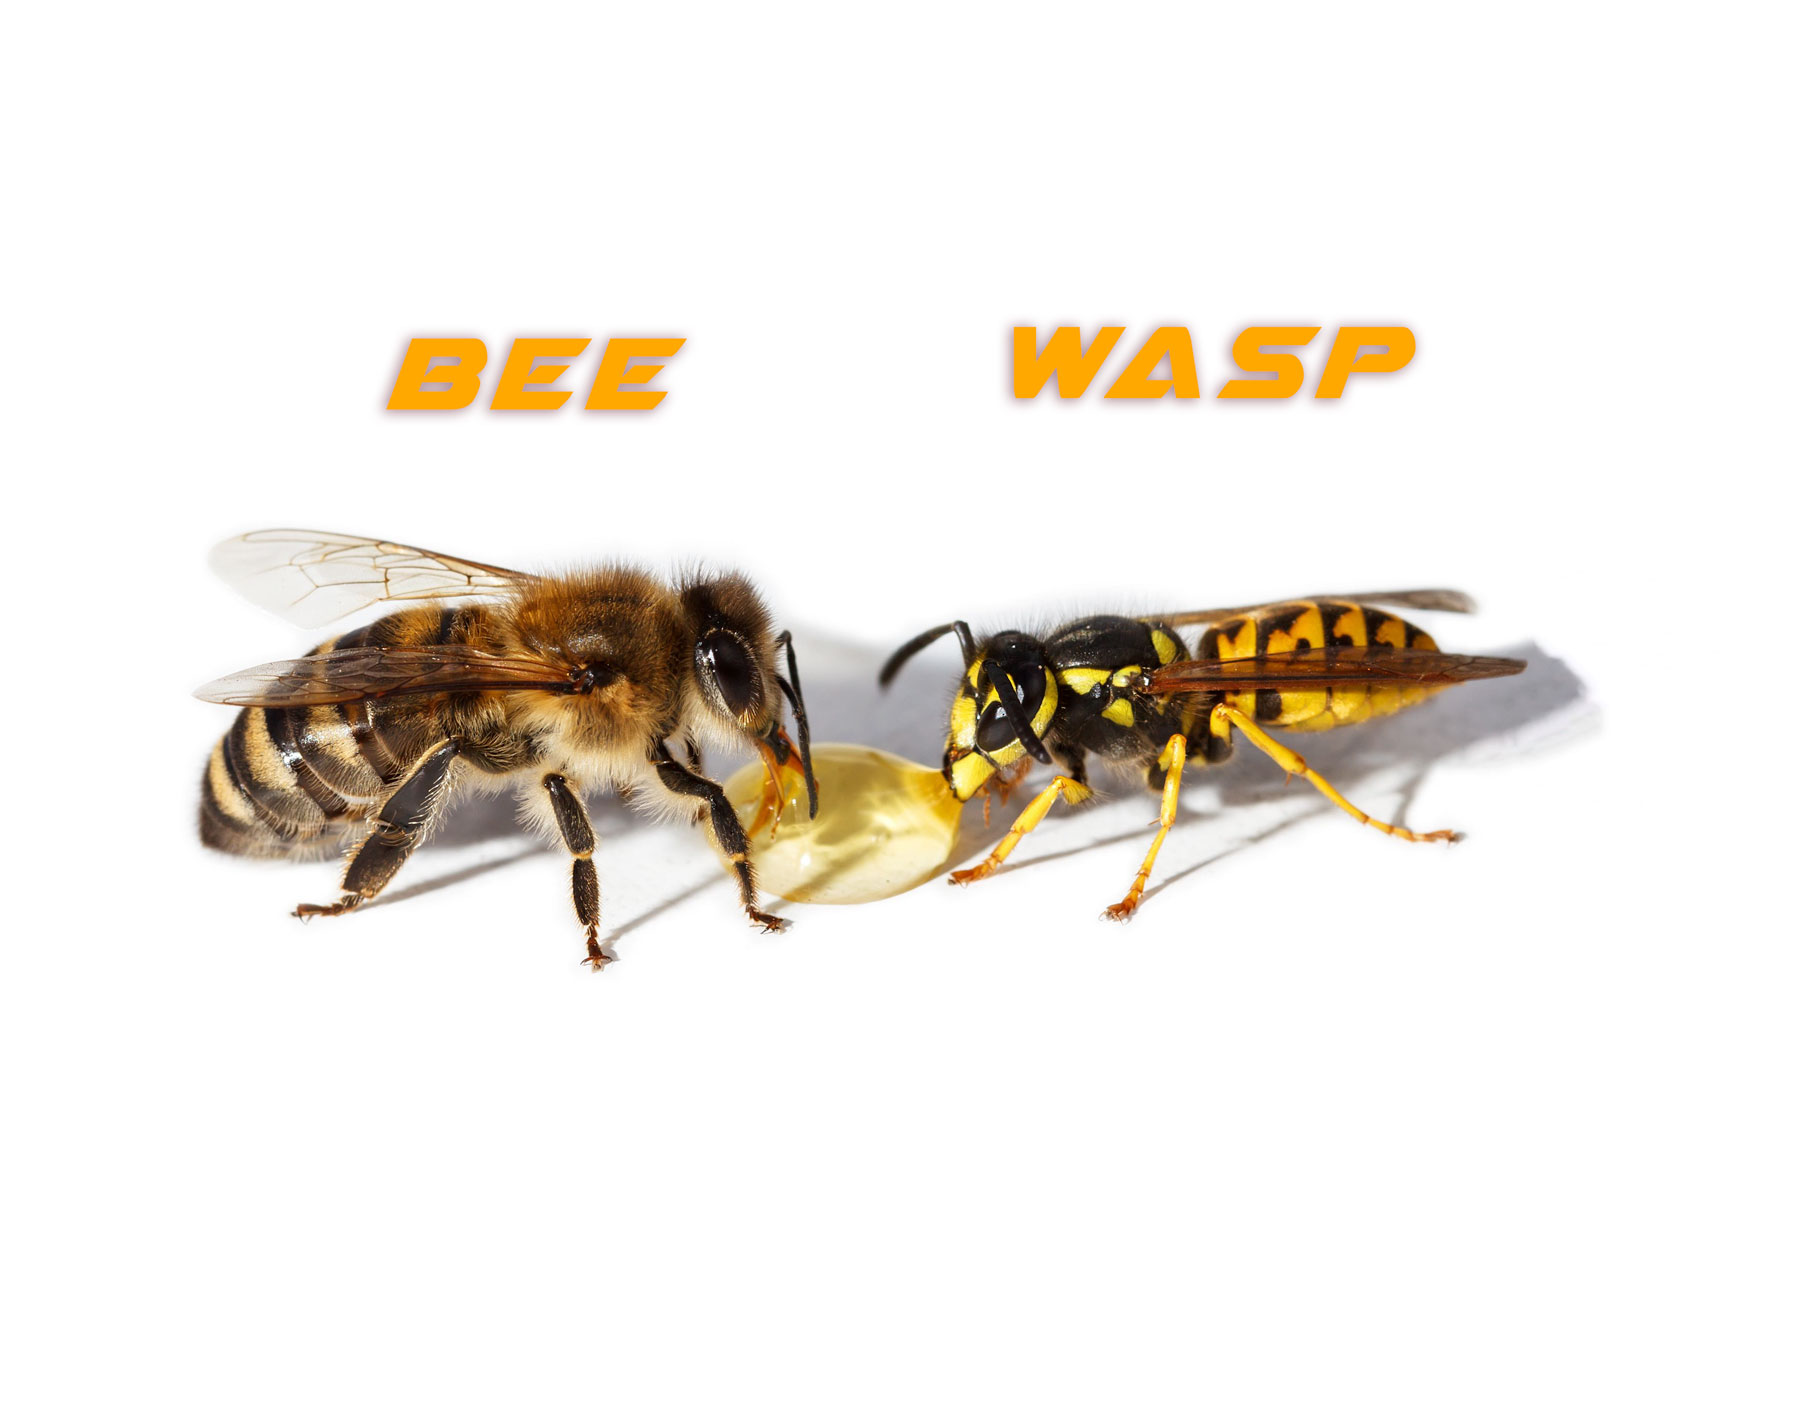 Difference between bee and yellow jacket wasp